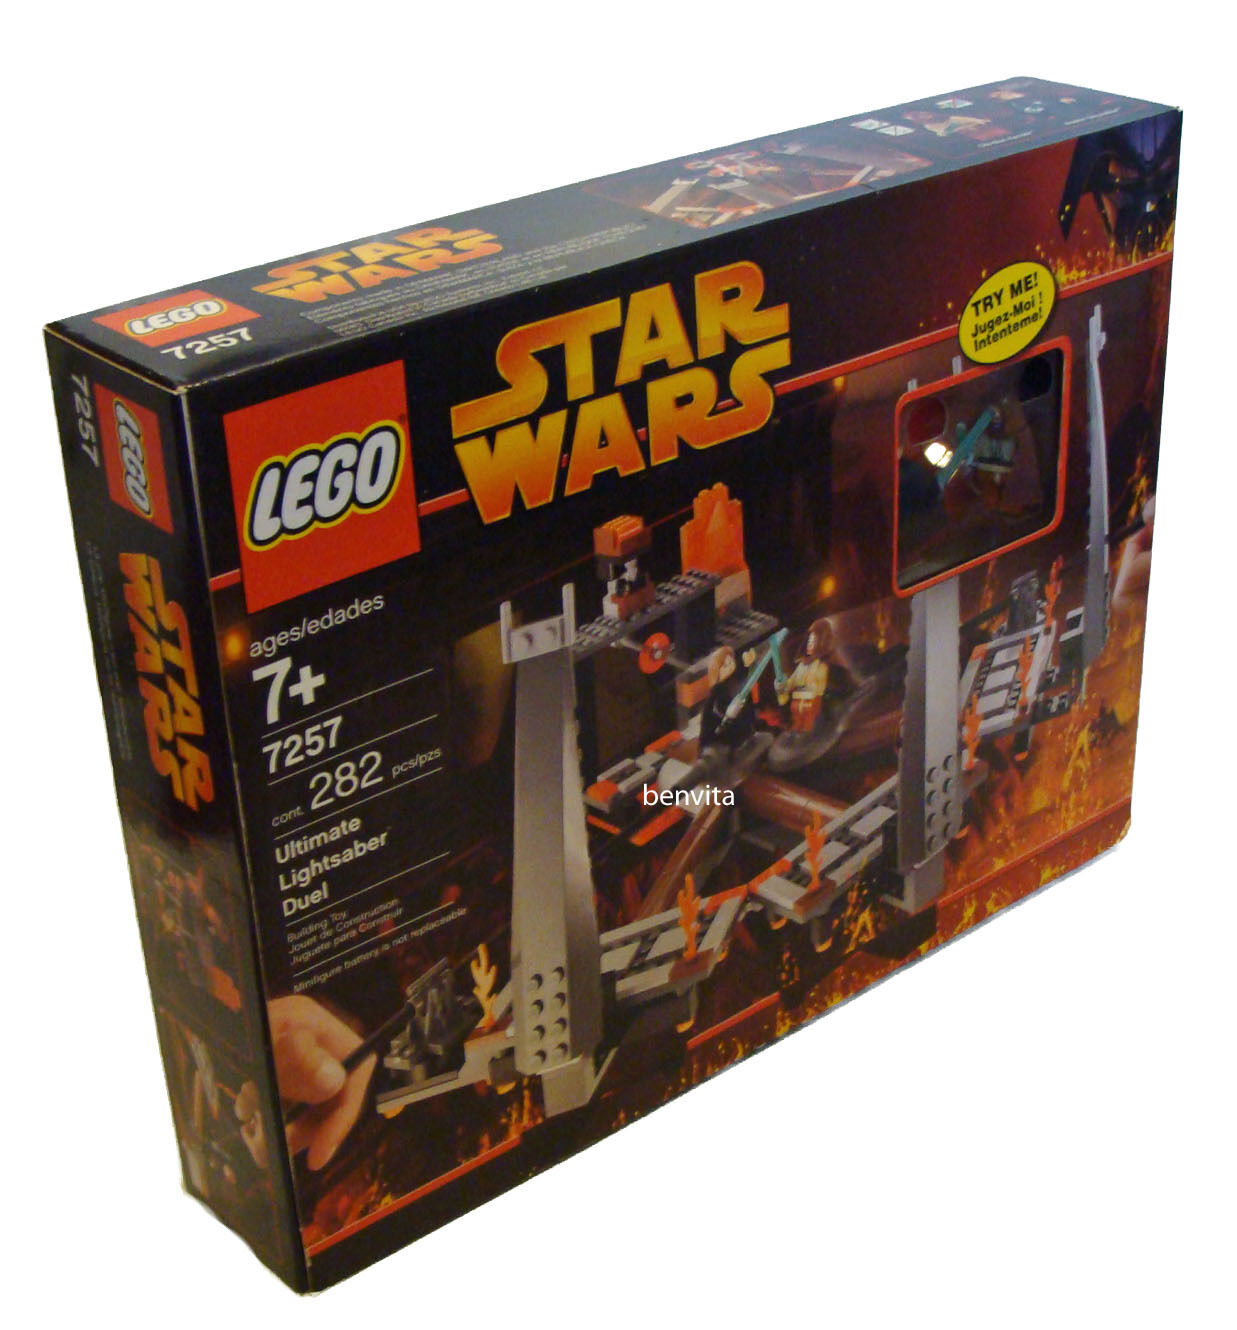 LEGO ® Star Wars 7257-ULTIMATE LIGHTSABER DUEL 282 parti 7+ - NUOVO